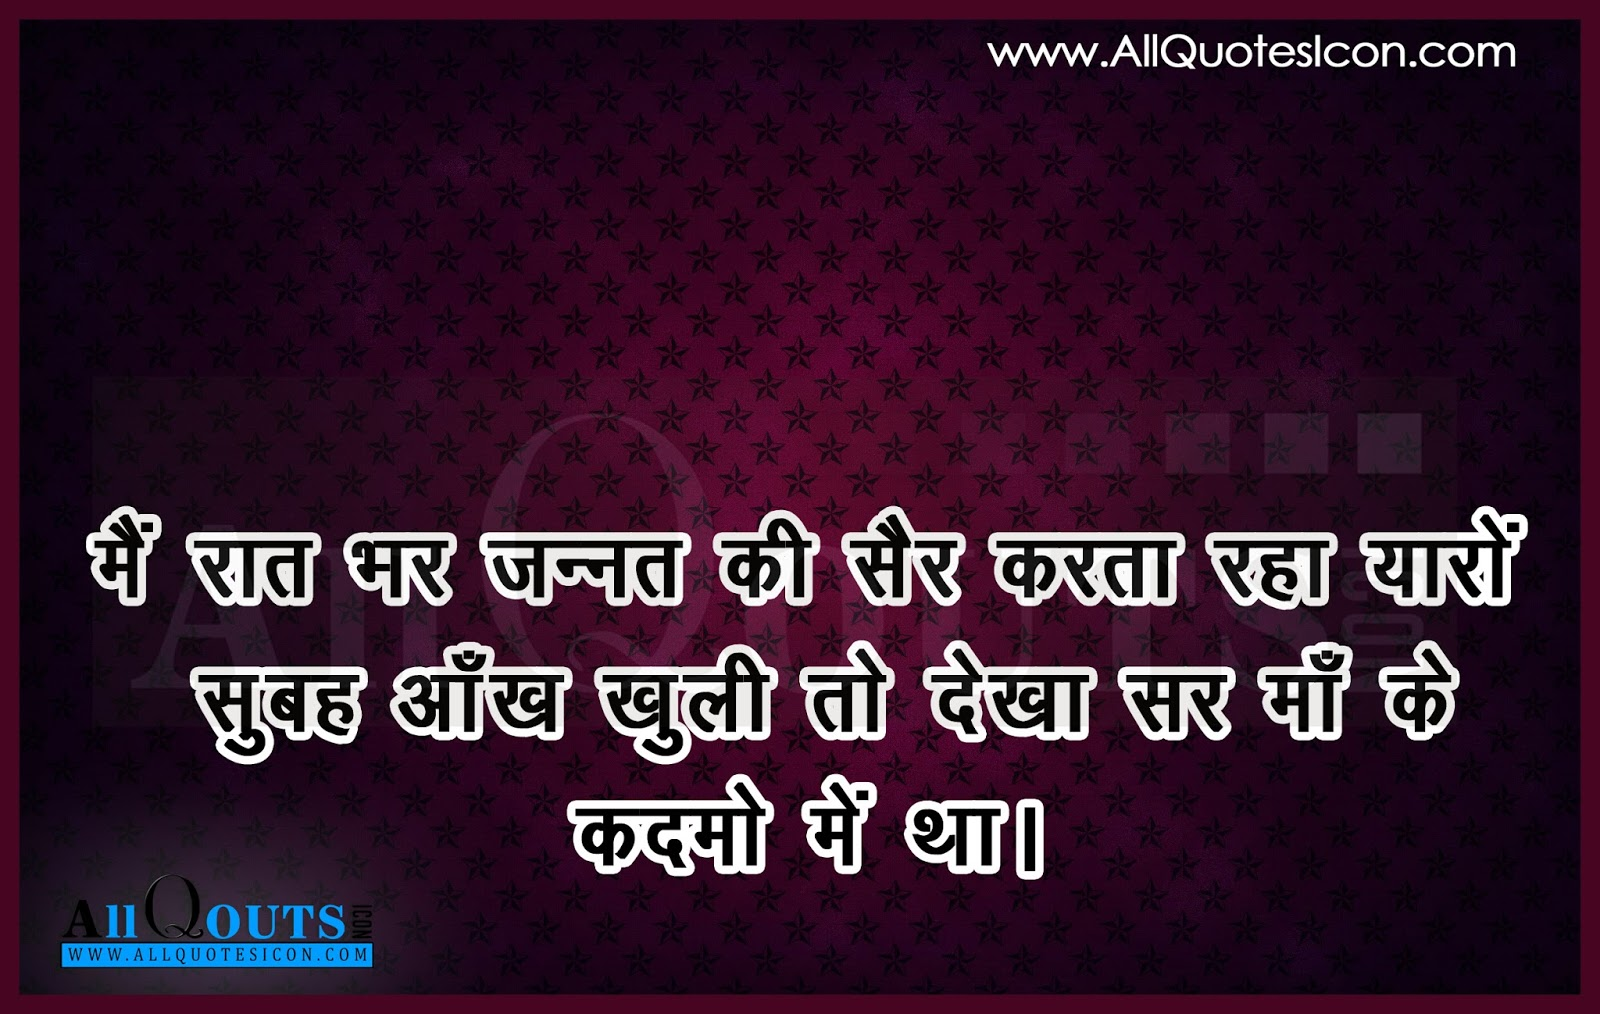 Funny Love Quotes In Hindi : Hindi Quotes , Life Quotes in Hindi 10:58:00 PM